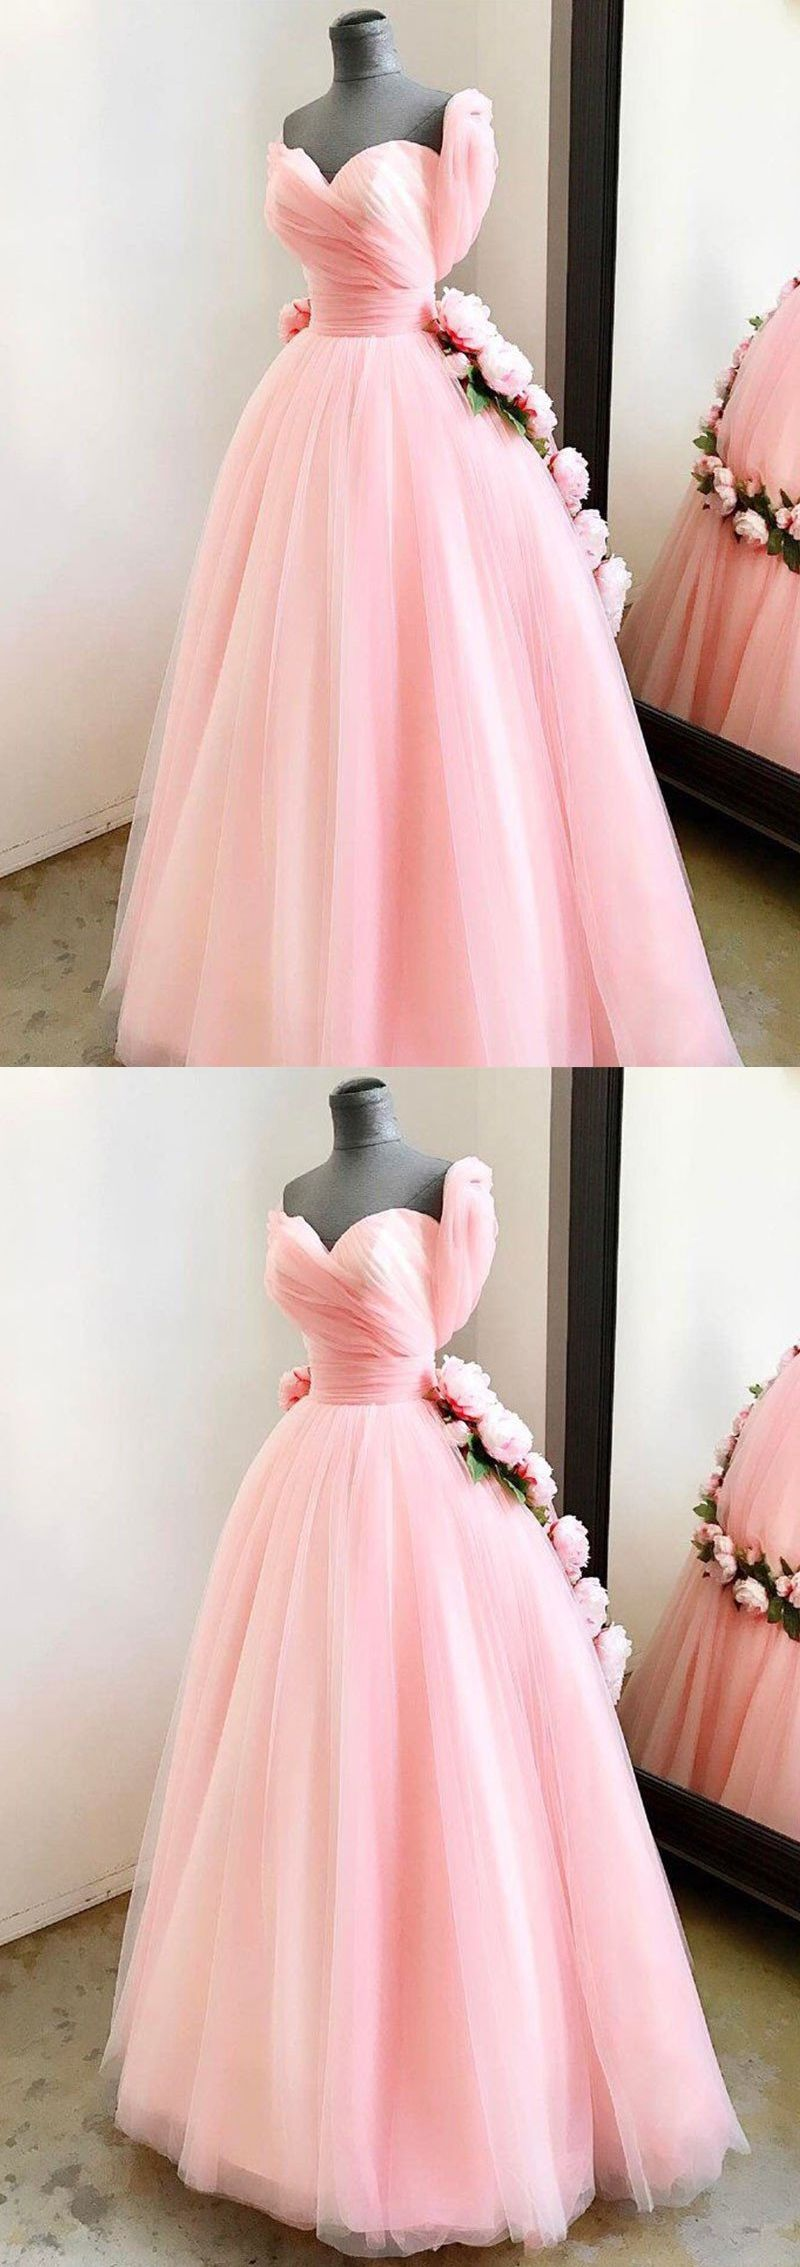 Chic Prom Dresses Sweetheart Ball Gown Floor-length Pink Prom Dress ...